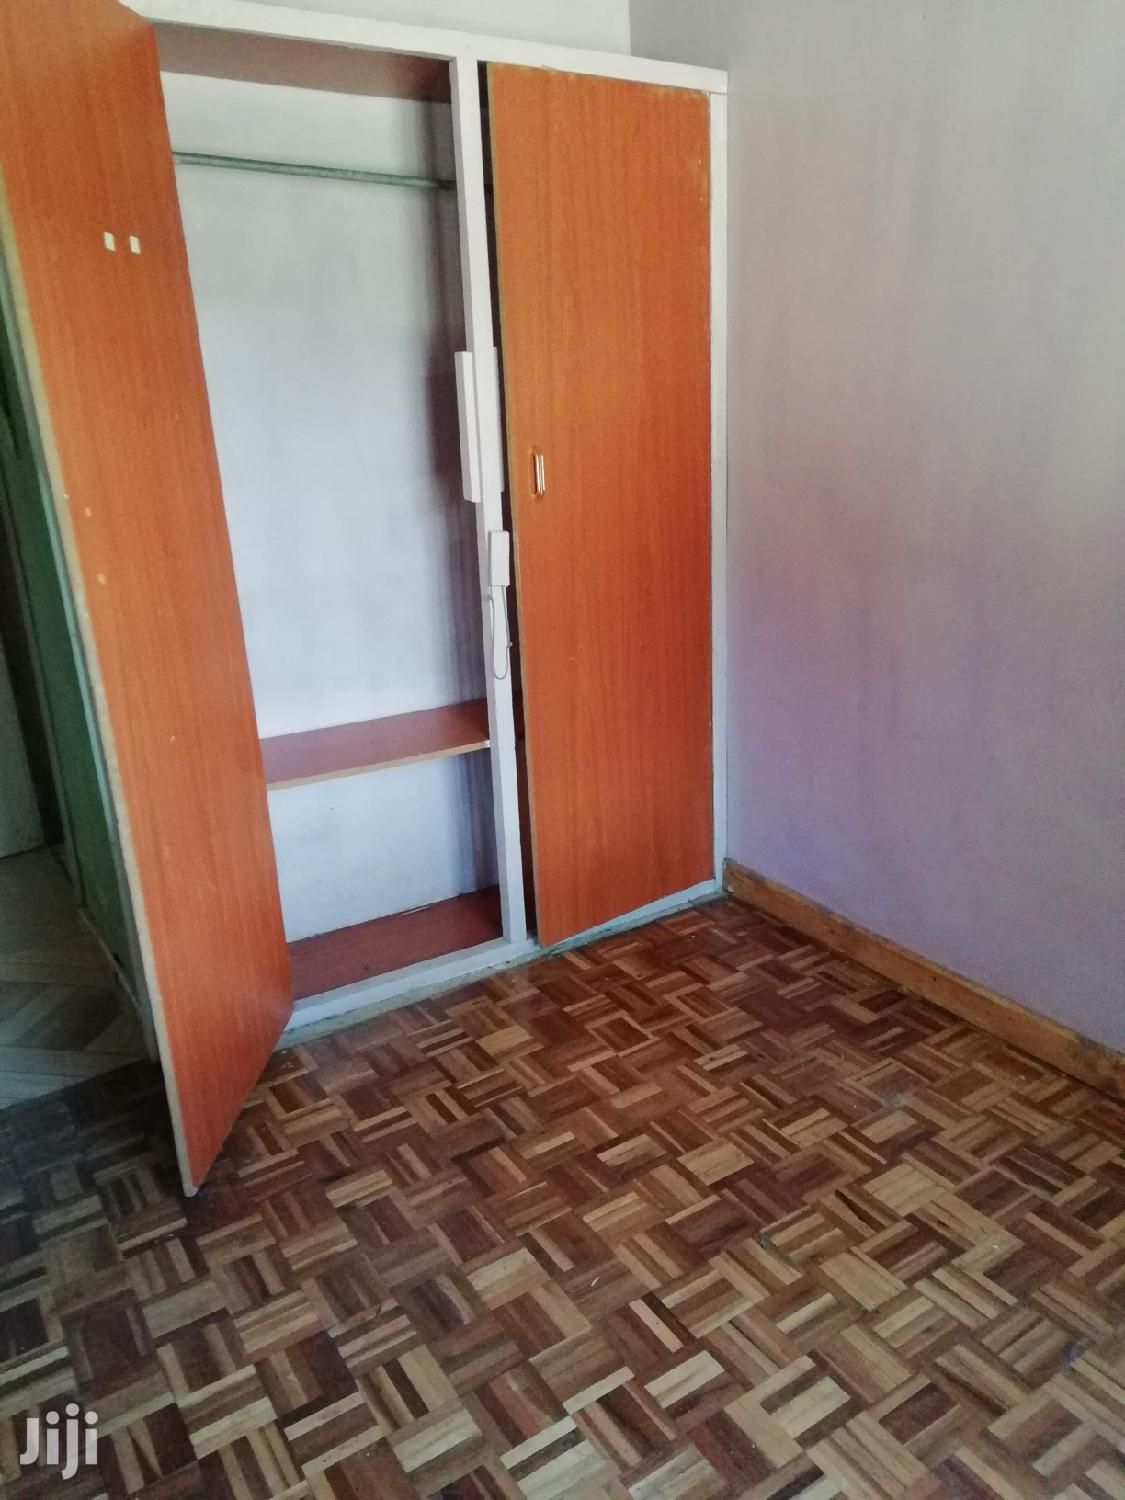 Property World,1br Extention With Garden and Very Secure | Houses & Apartments For Rent for sale in Lavington, Nairobi, Kenya